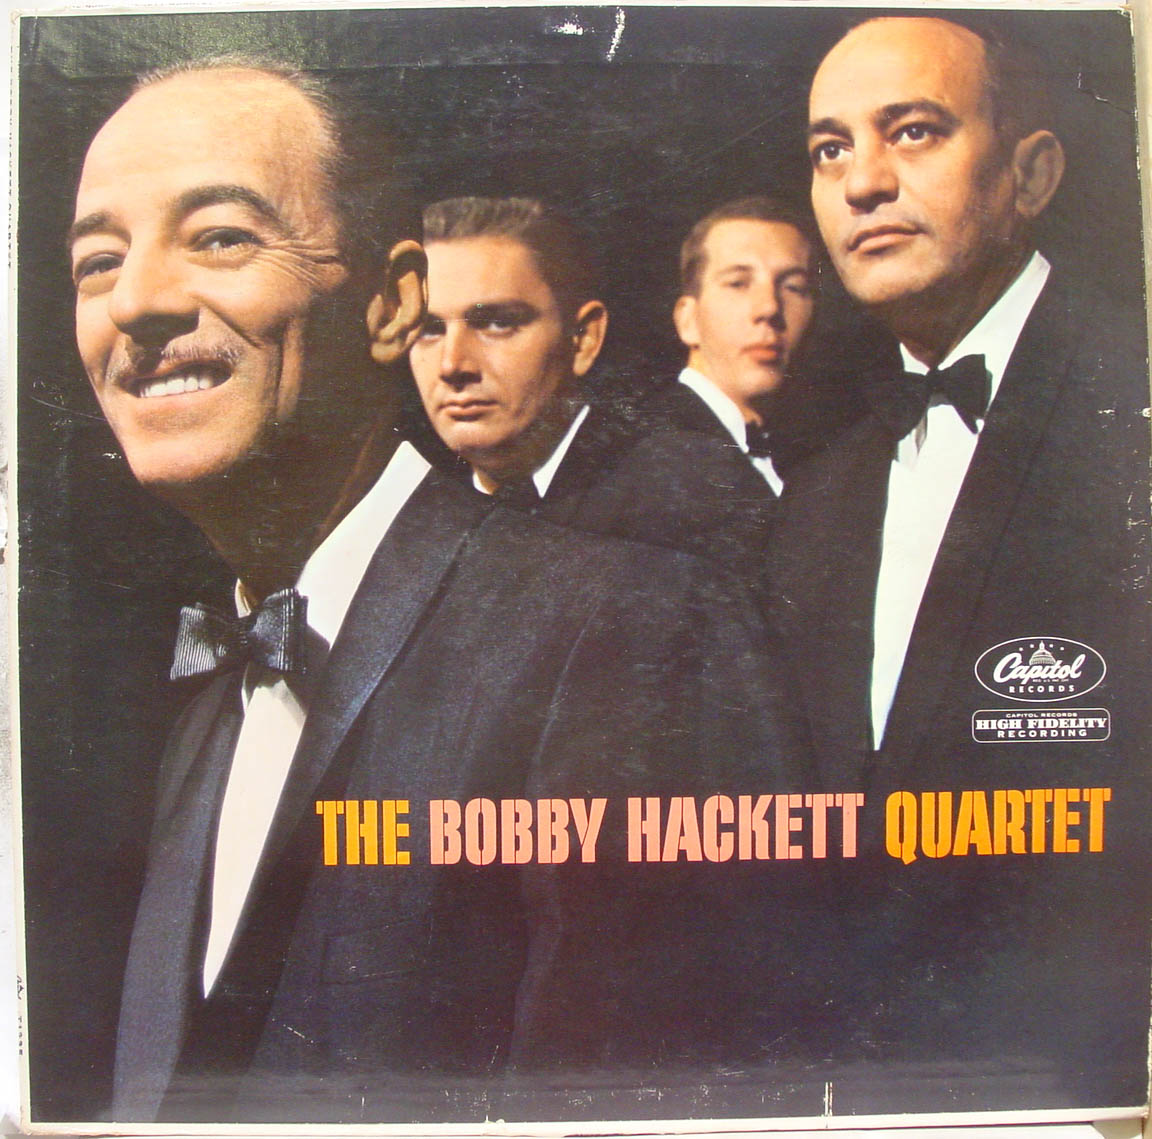 The Bobby Hackett Quartet